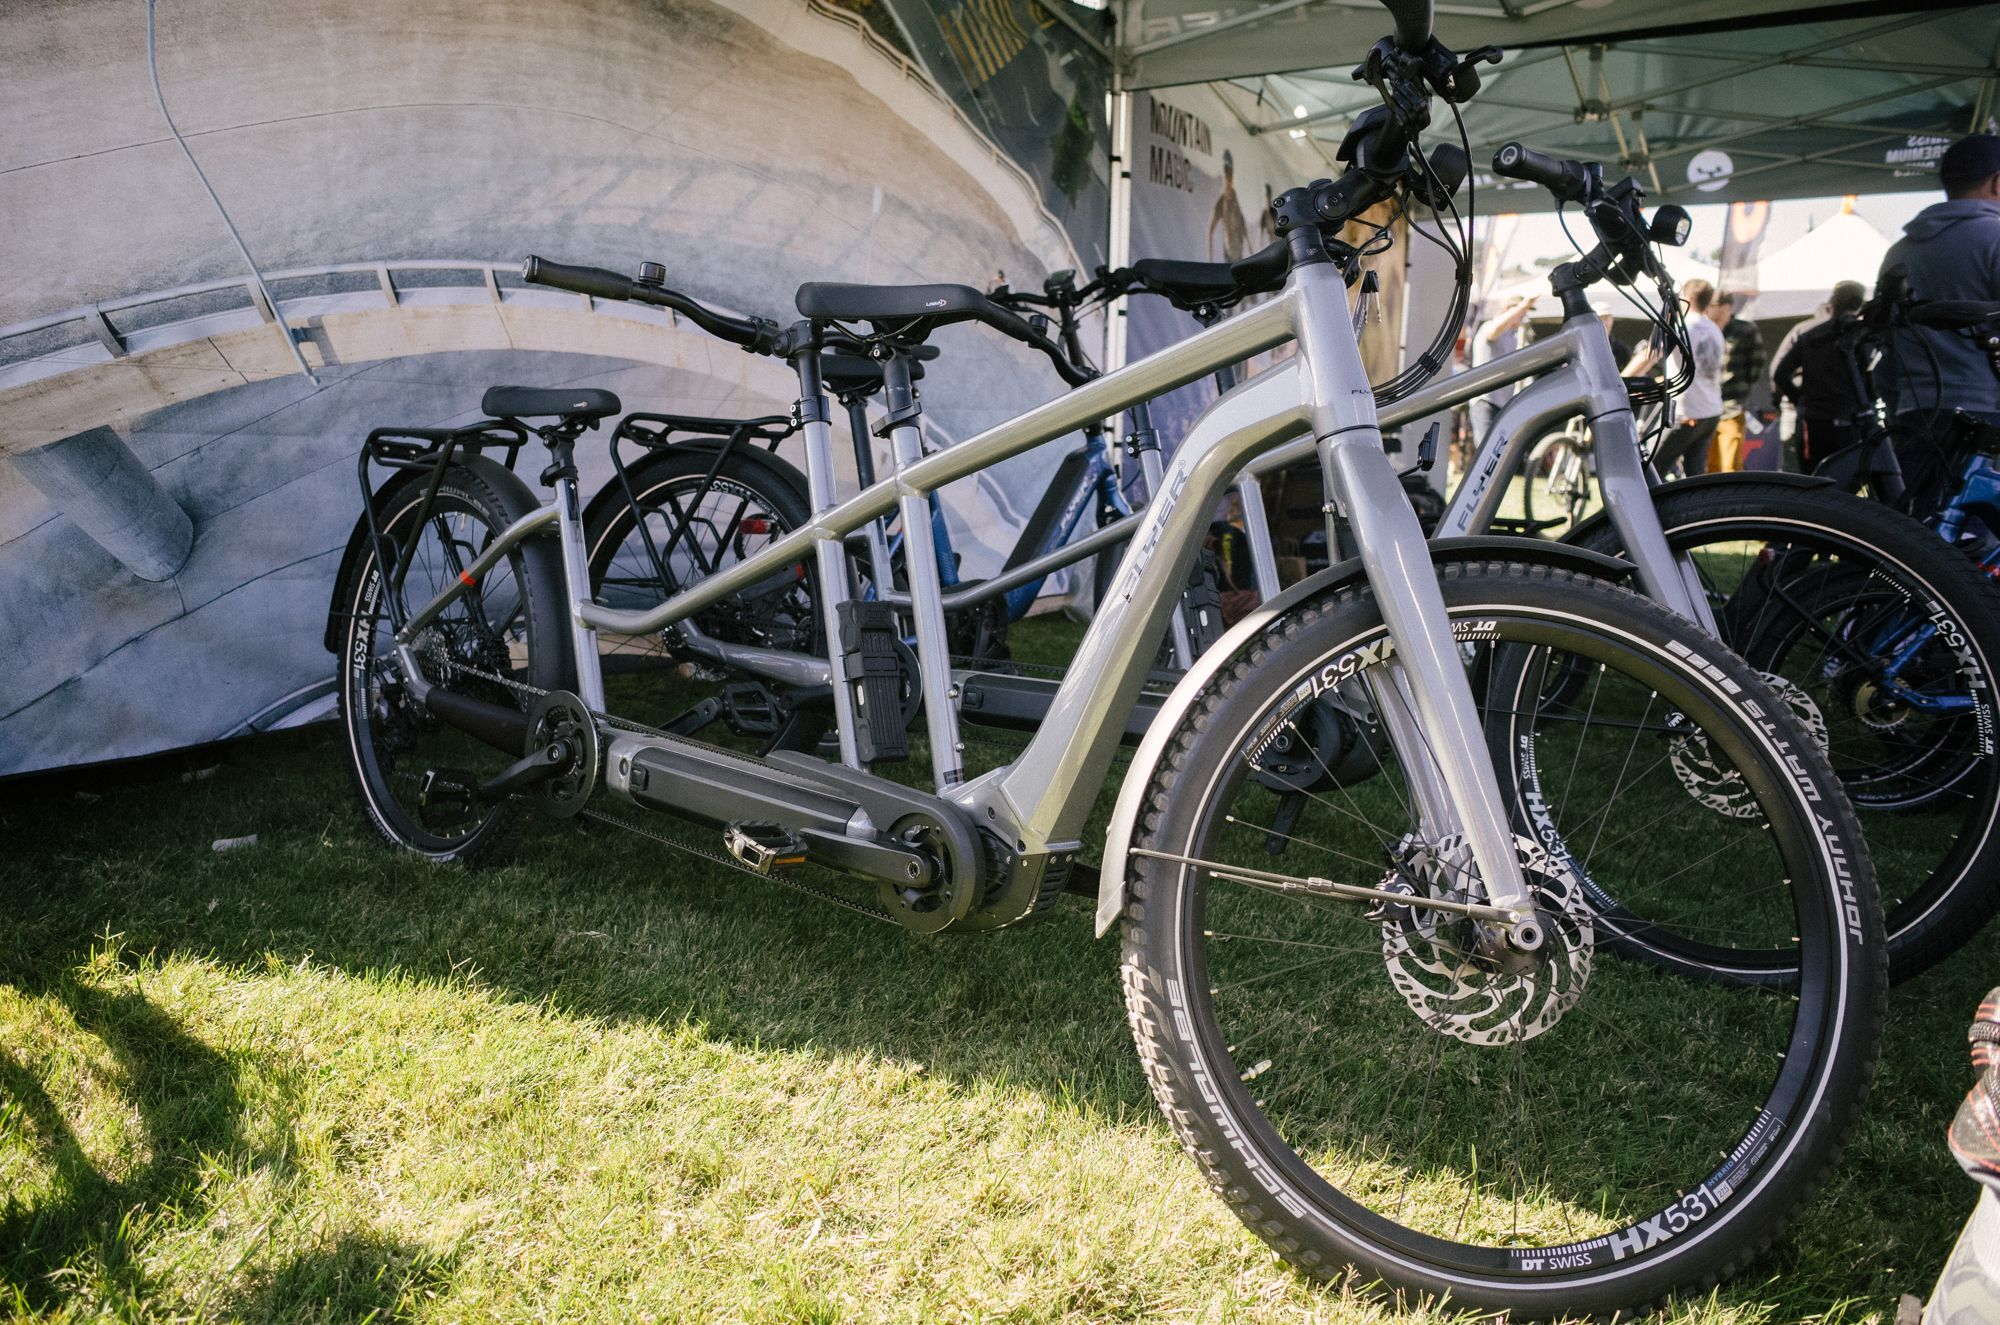 We promised you an e-bike tandem, so here is an e-bike tandem. I'm sure opinions will be divided on this one.